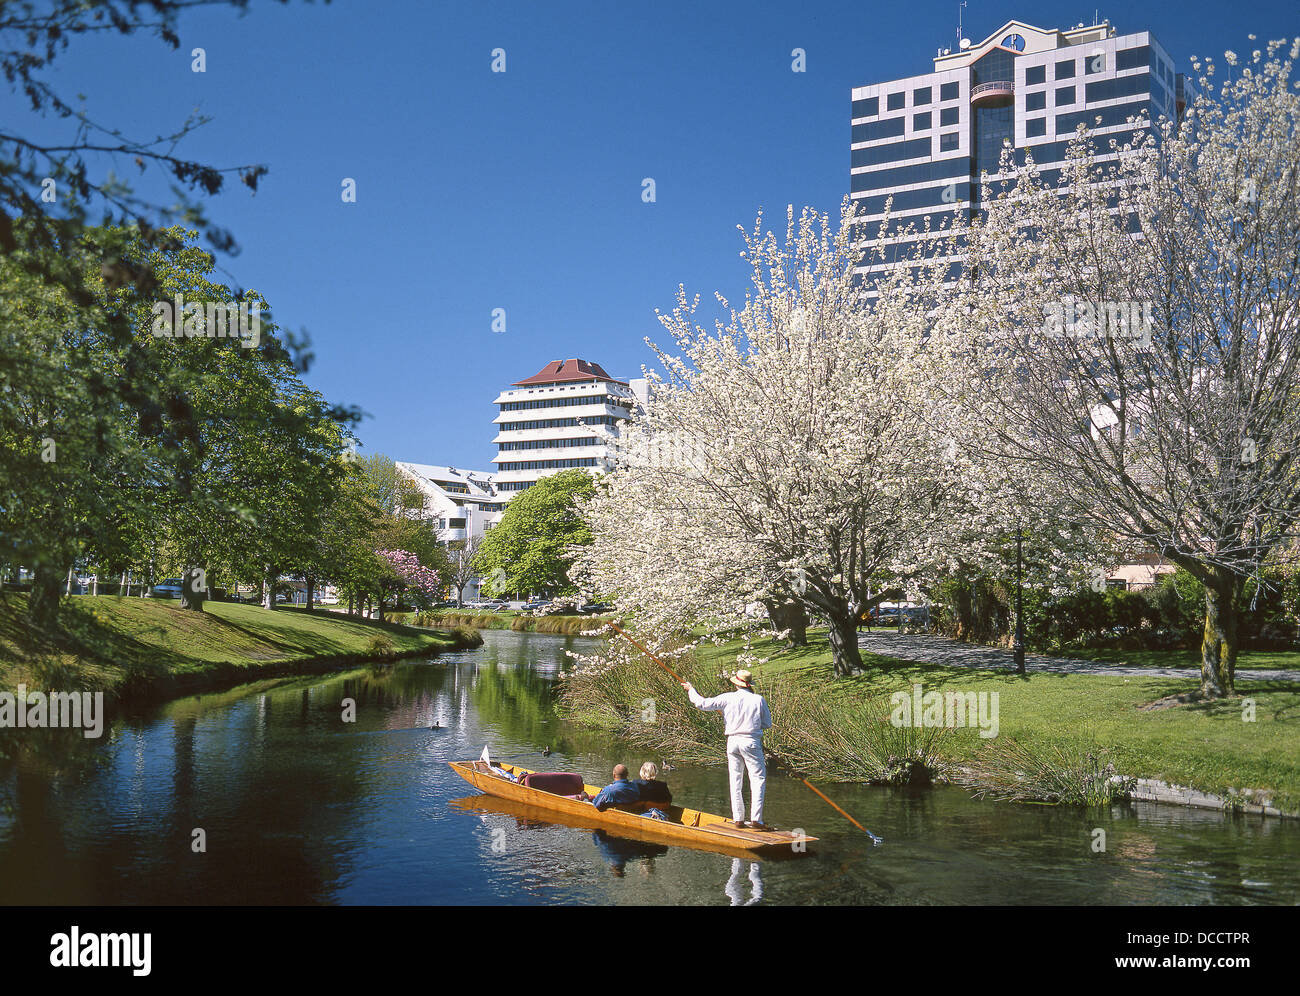 Christchurch News Photo: Punting On The Avon River In Spring Christchurch New